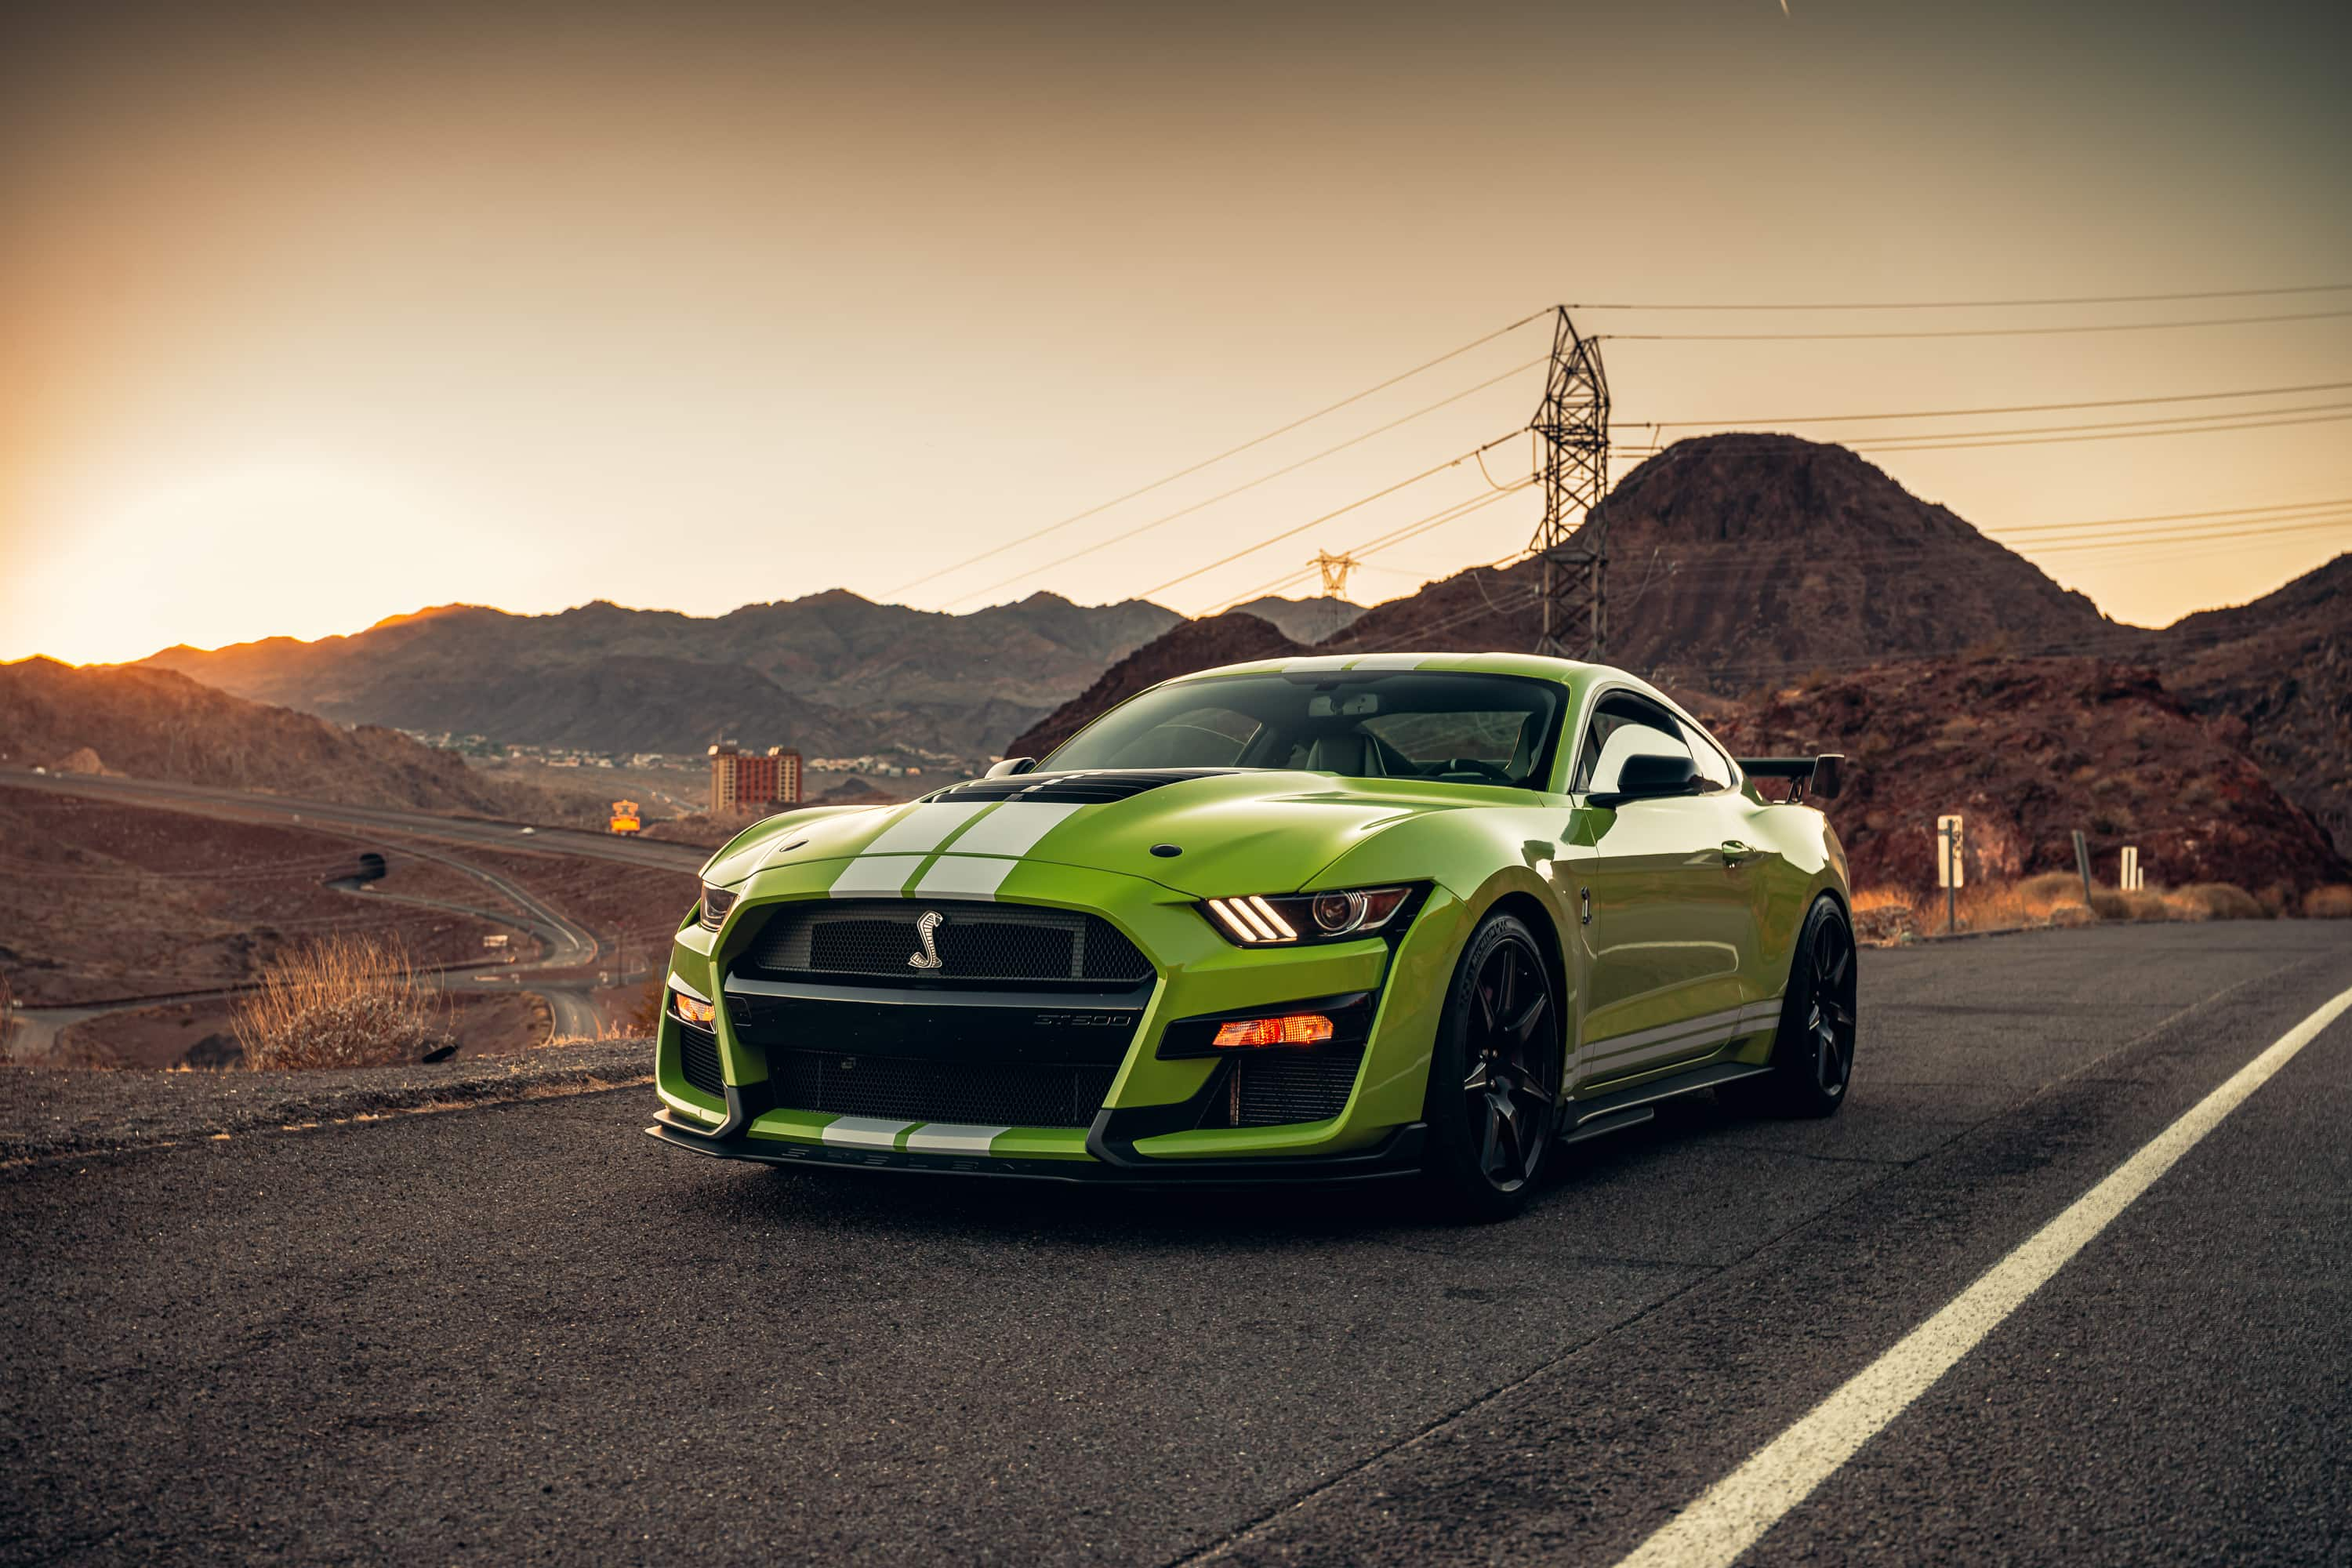 1366x768 Ford Mustang Shelby Gt500 Usa 1366x768 Resolution Hd 4k Wallpapers Images Backgrounds Photos And Pictures